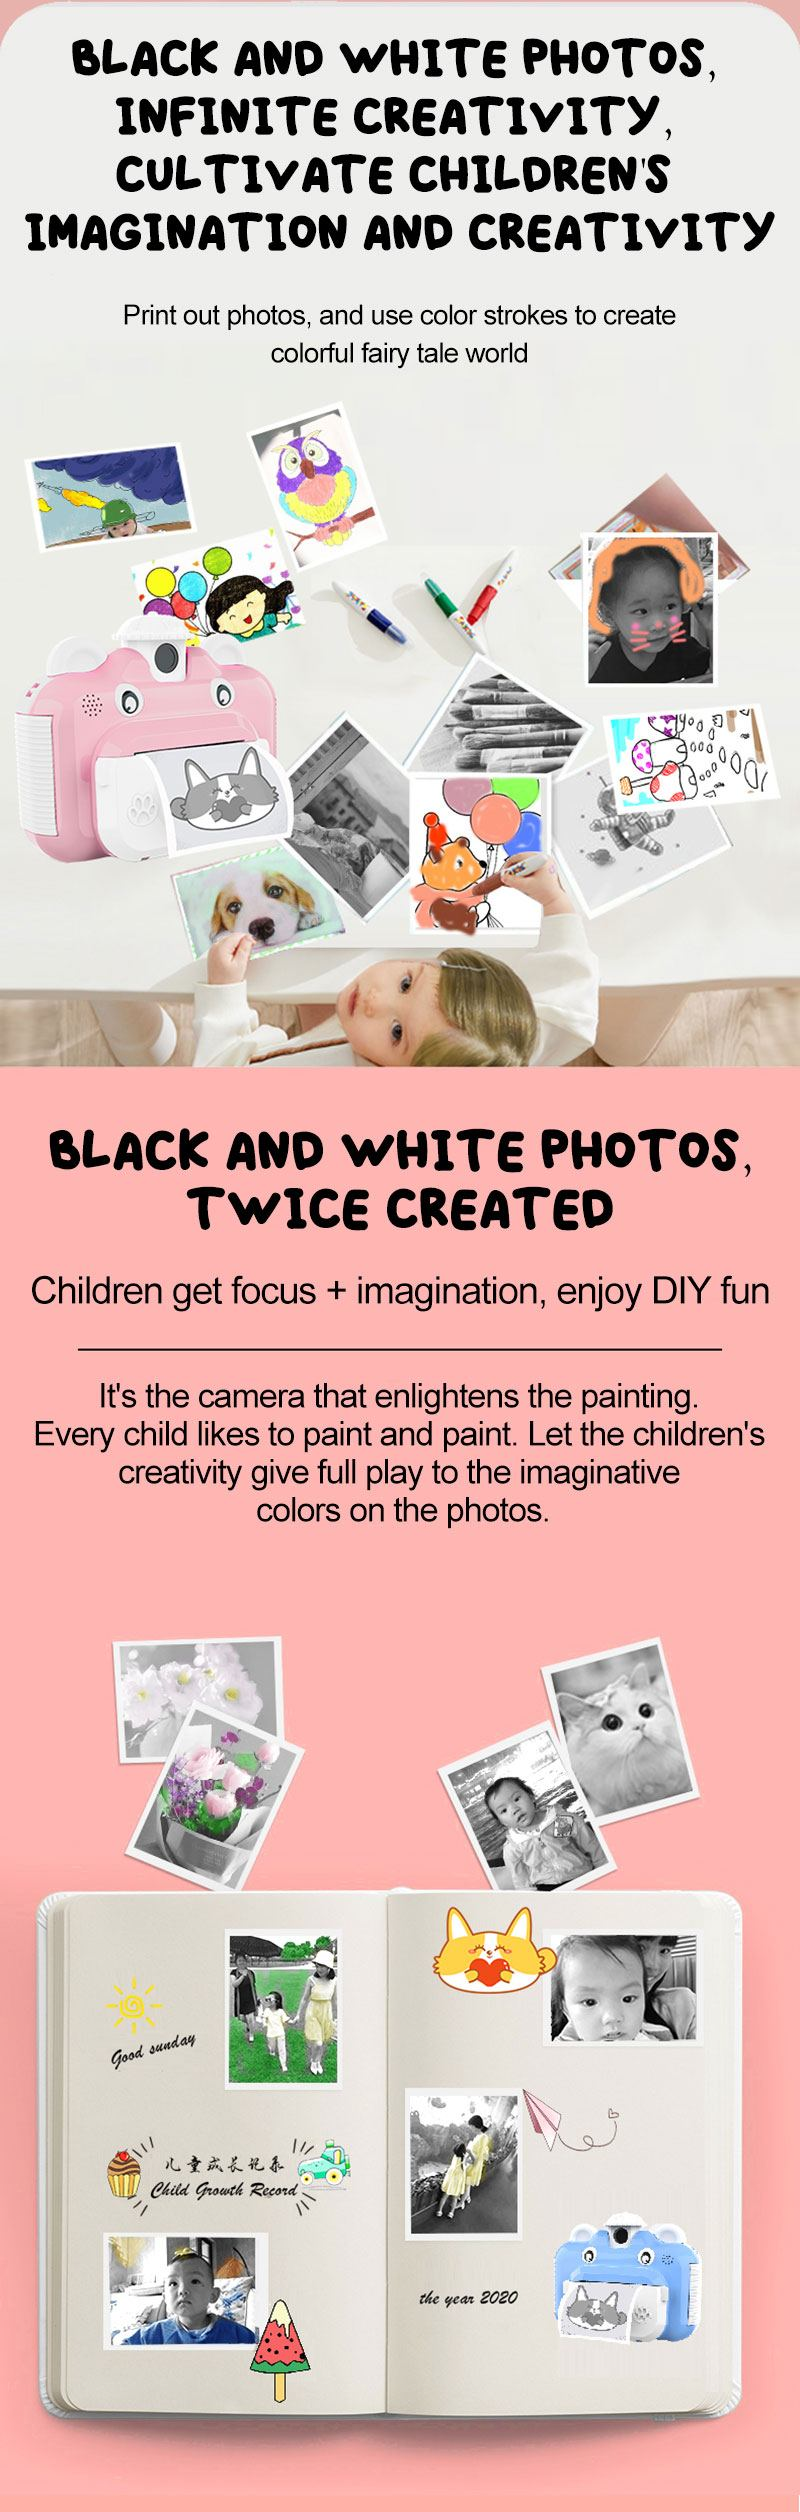 Minibear Children Camera Instant Print Camera For Kids 1080P HD Camera With Thermal Photo Paper Toys Camera For Birthday Gifts 2